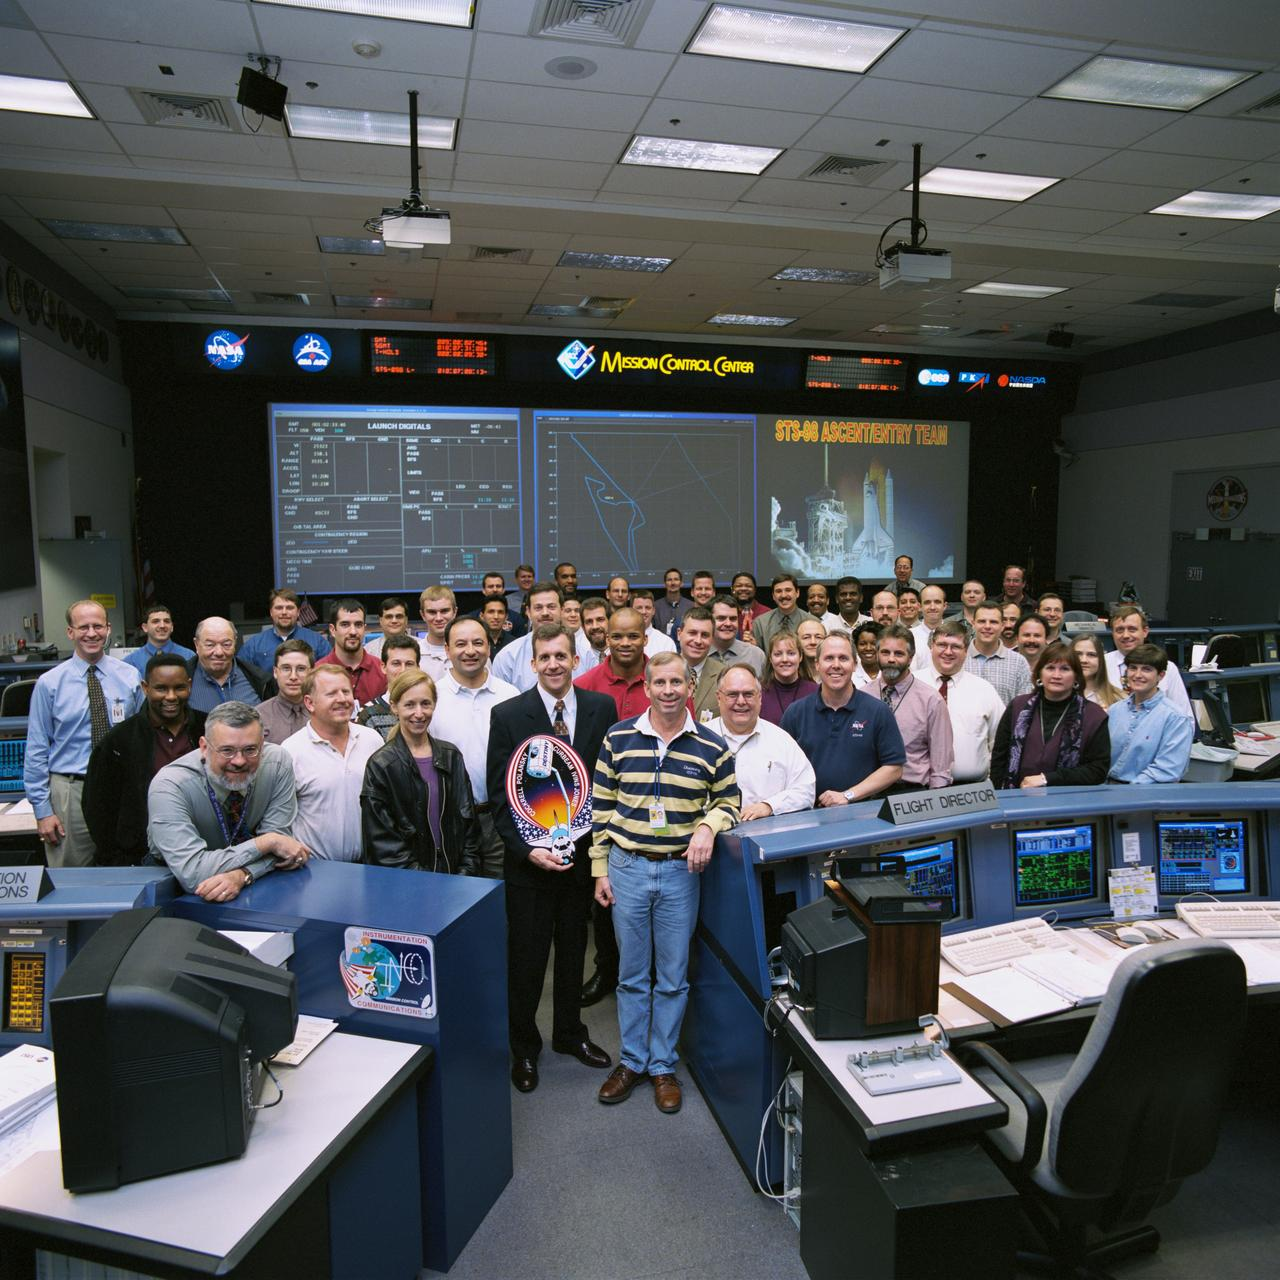 NASA Image & Video Library | STS-98 Flight Control Team Photo in the WFCR | All credits to NASA.gov